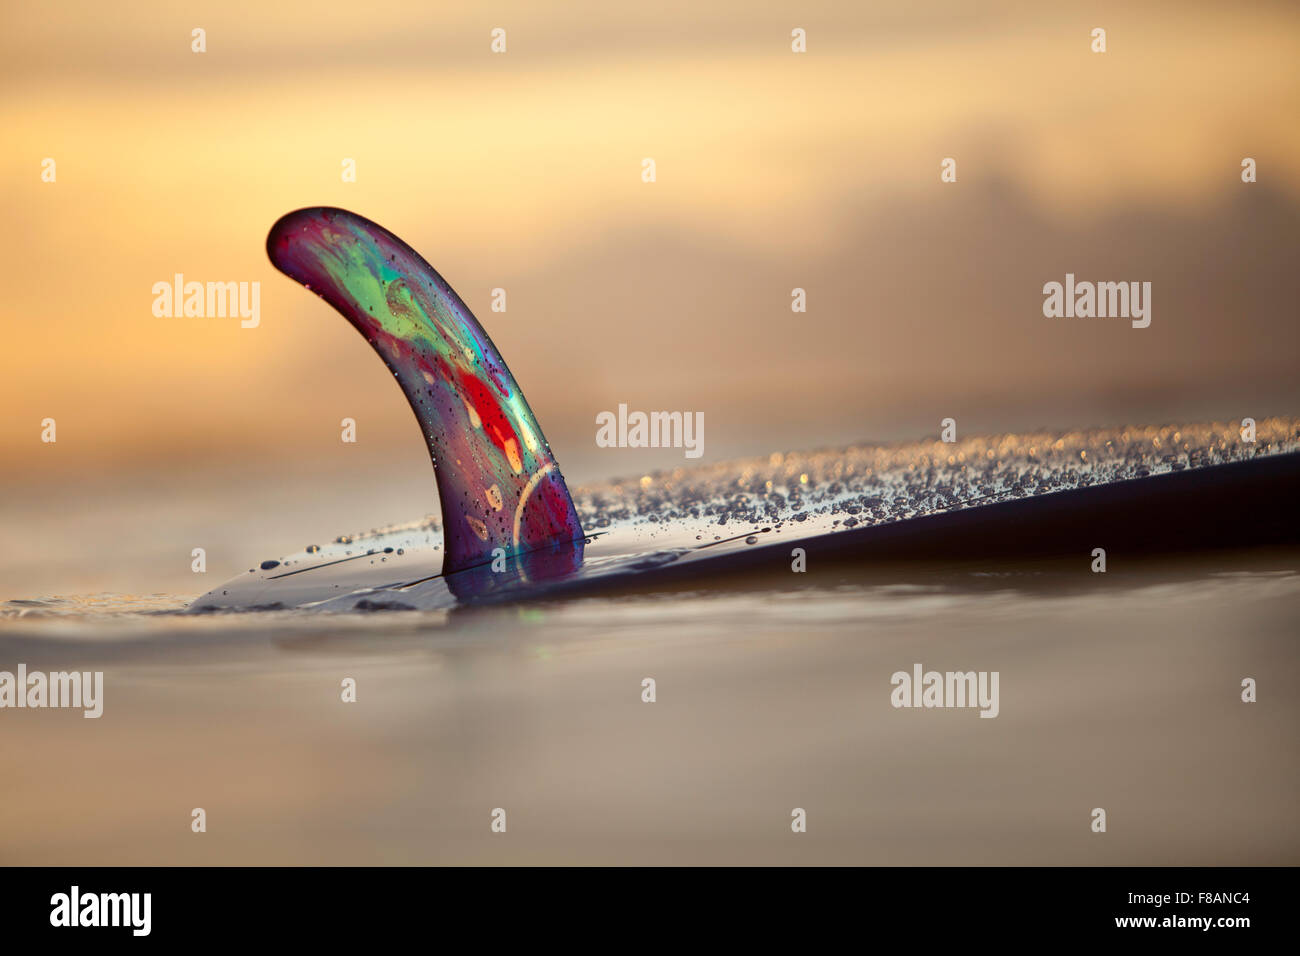 Catalog shot of RFC multi-colored10' surfboard fin at sunset.  Water drops on fin and bottom of longboard.  - Stock Image